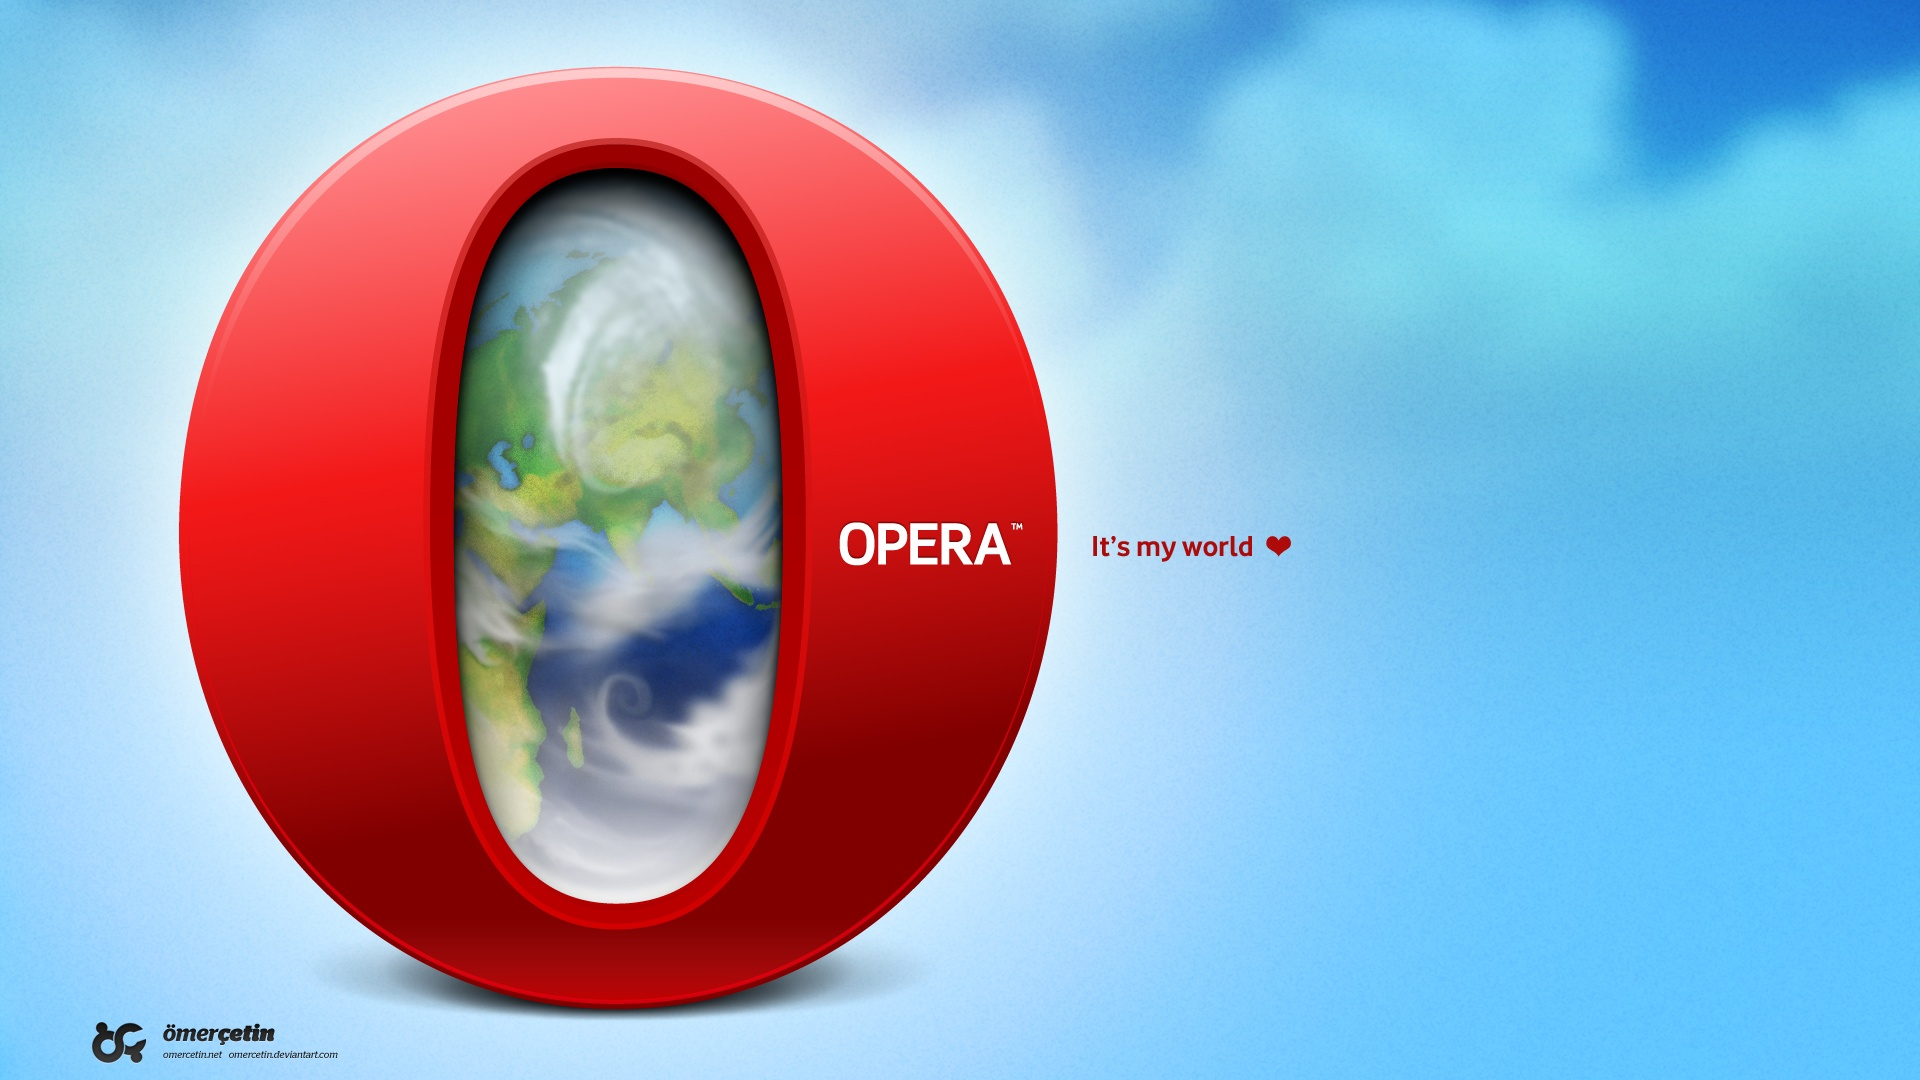 Opera My World